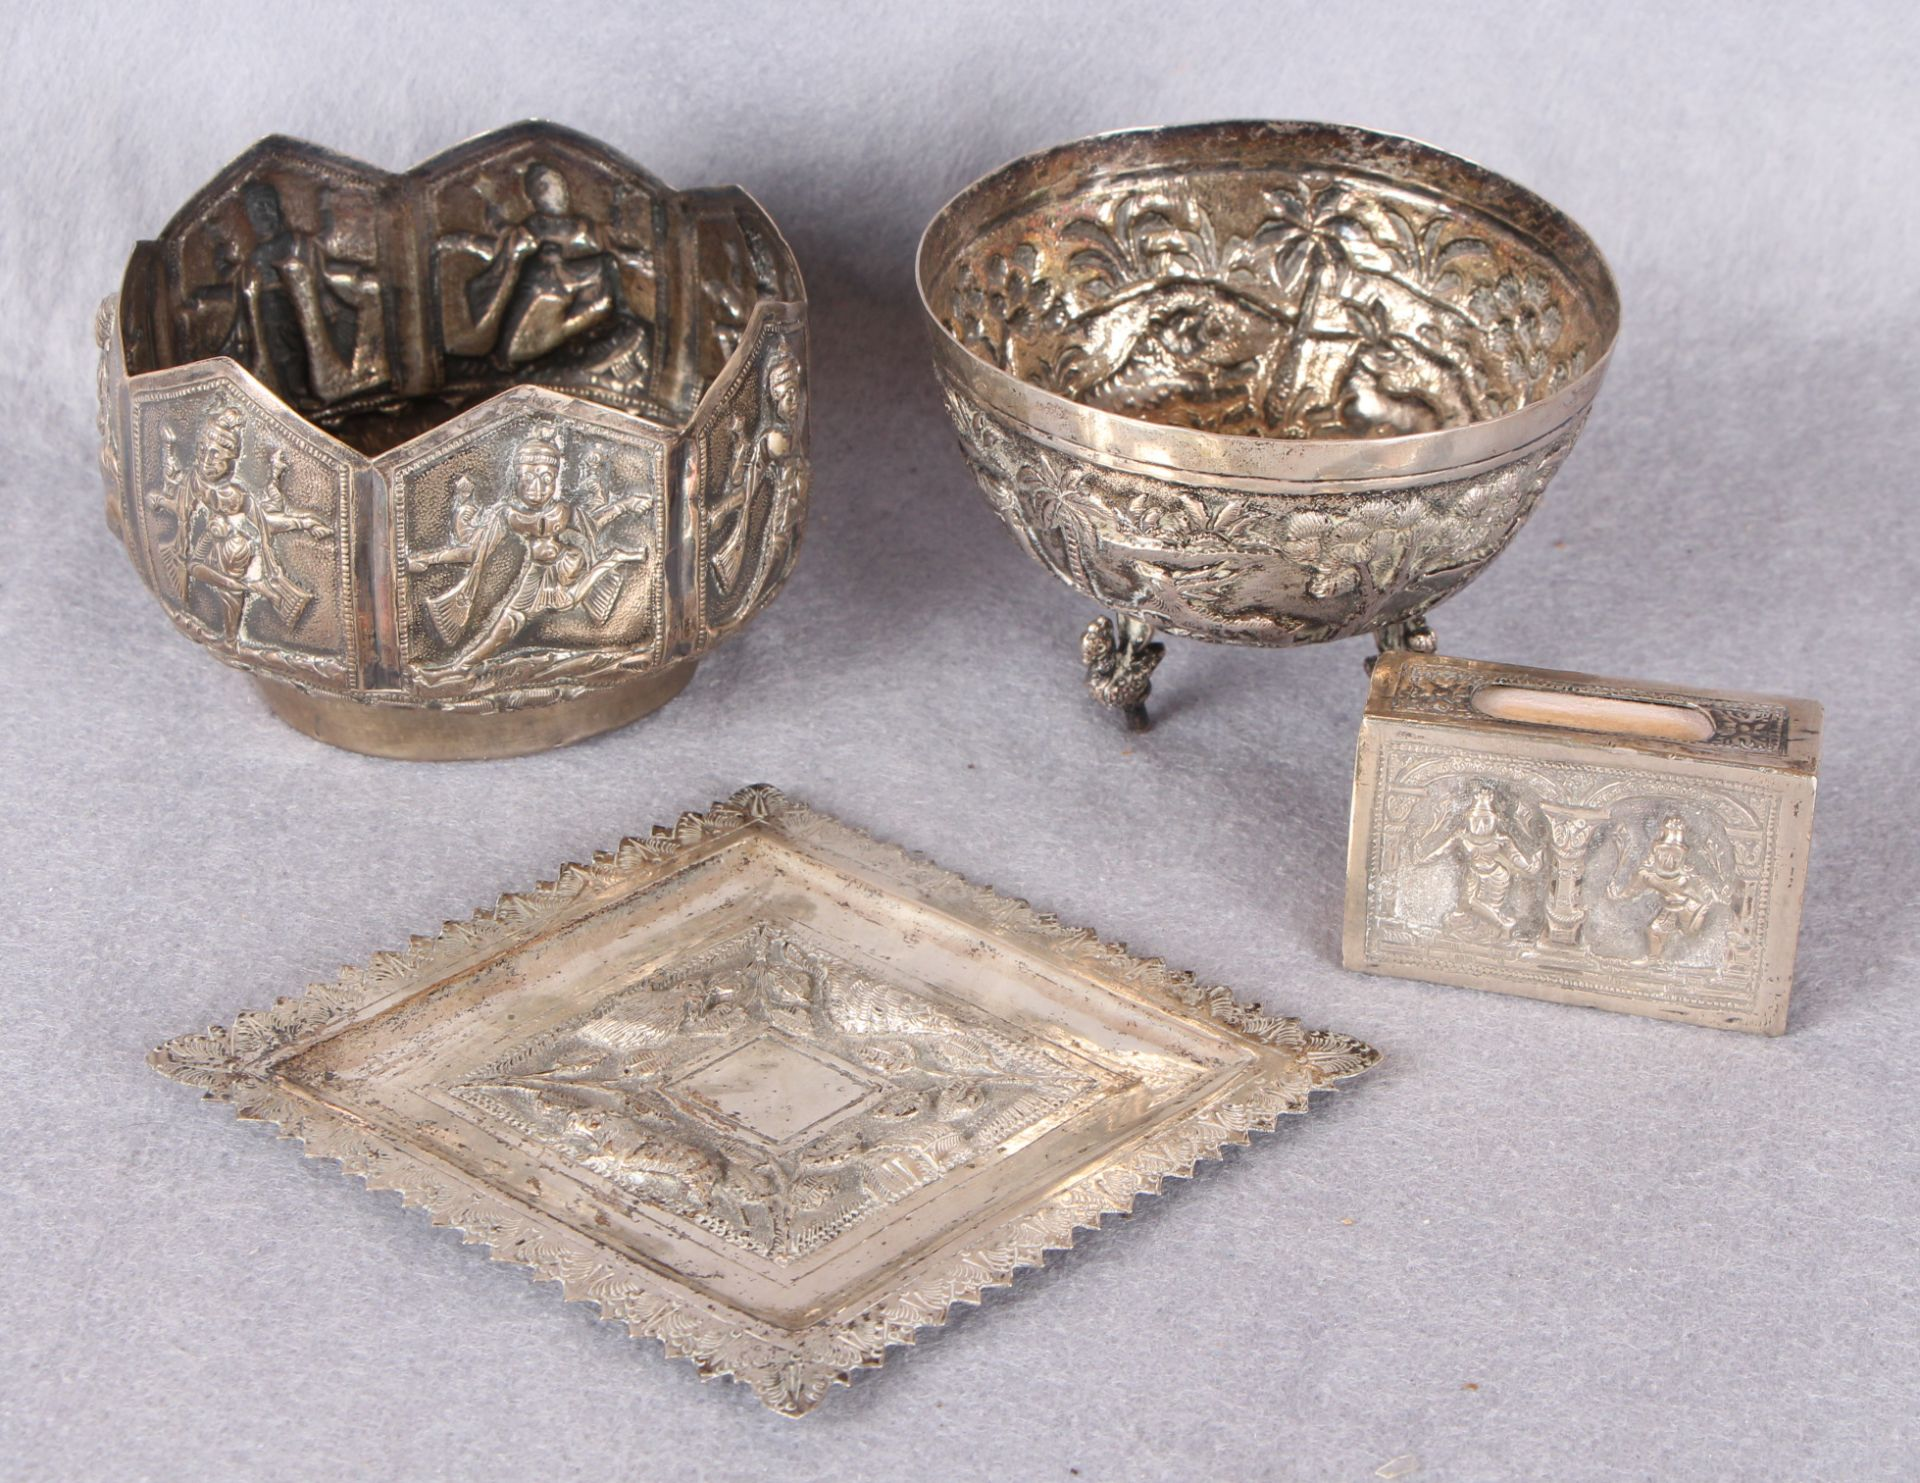 Lot 34 - Four items - Siamese white metal artifacts comprising a circular bowl on zoomorphic feet,